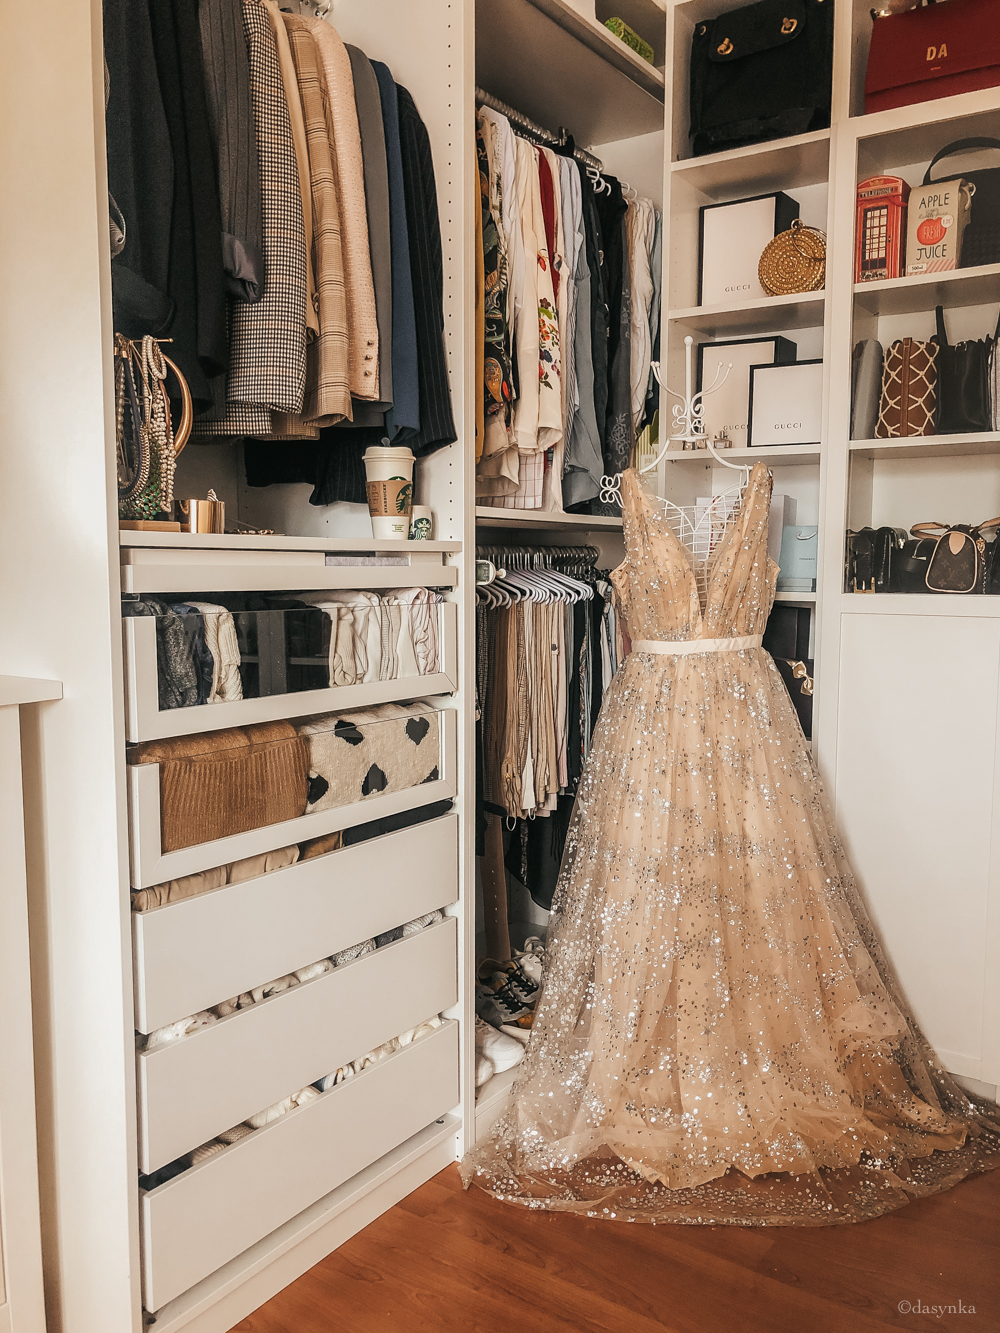 dasynka-fashion-blog-blogger-influencer-inspiration-ootd-inspo-outfit-shooting-model-globettrotter-travel-lookbook-instagram-street-style-italy-lifestyle-outfit-princess-gold-dress-golden-pink-walking-closet-ikea